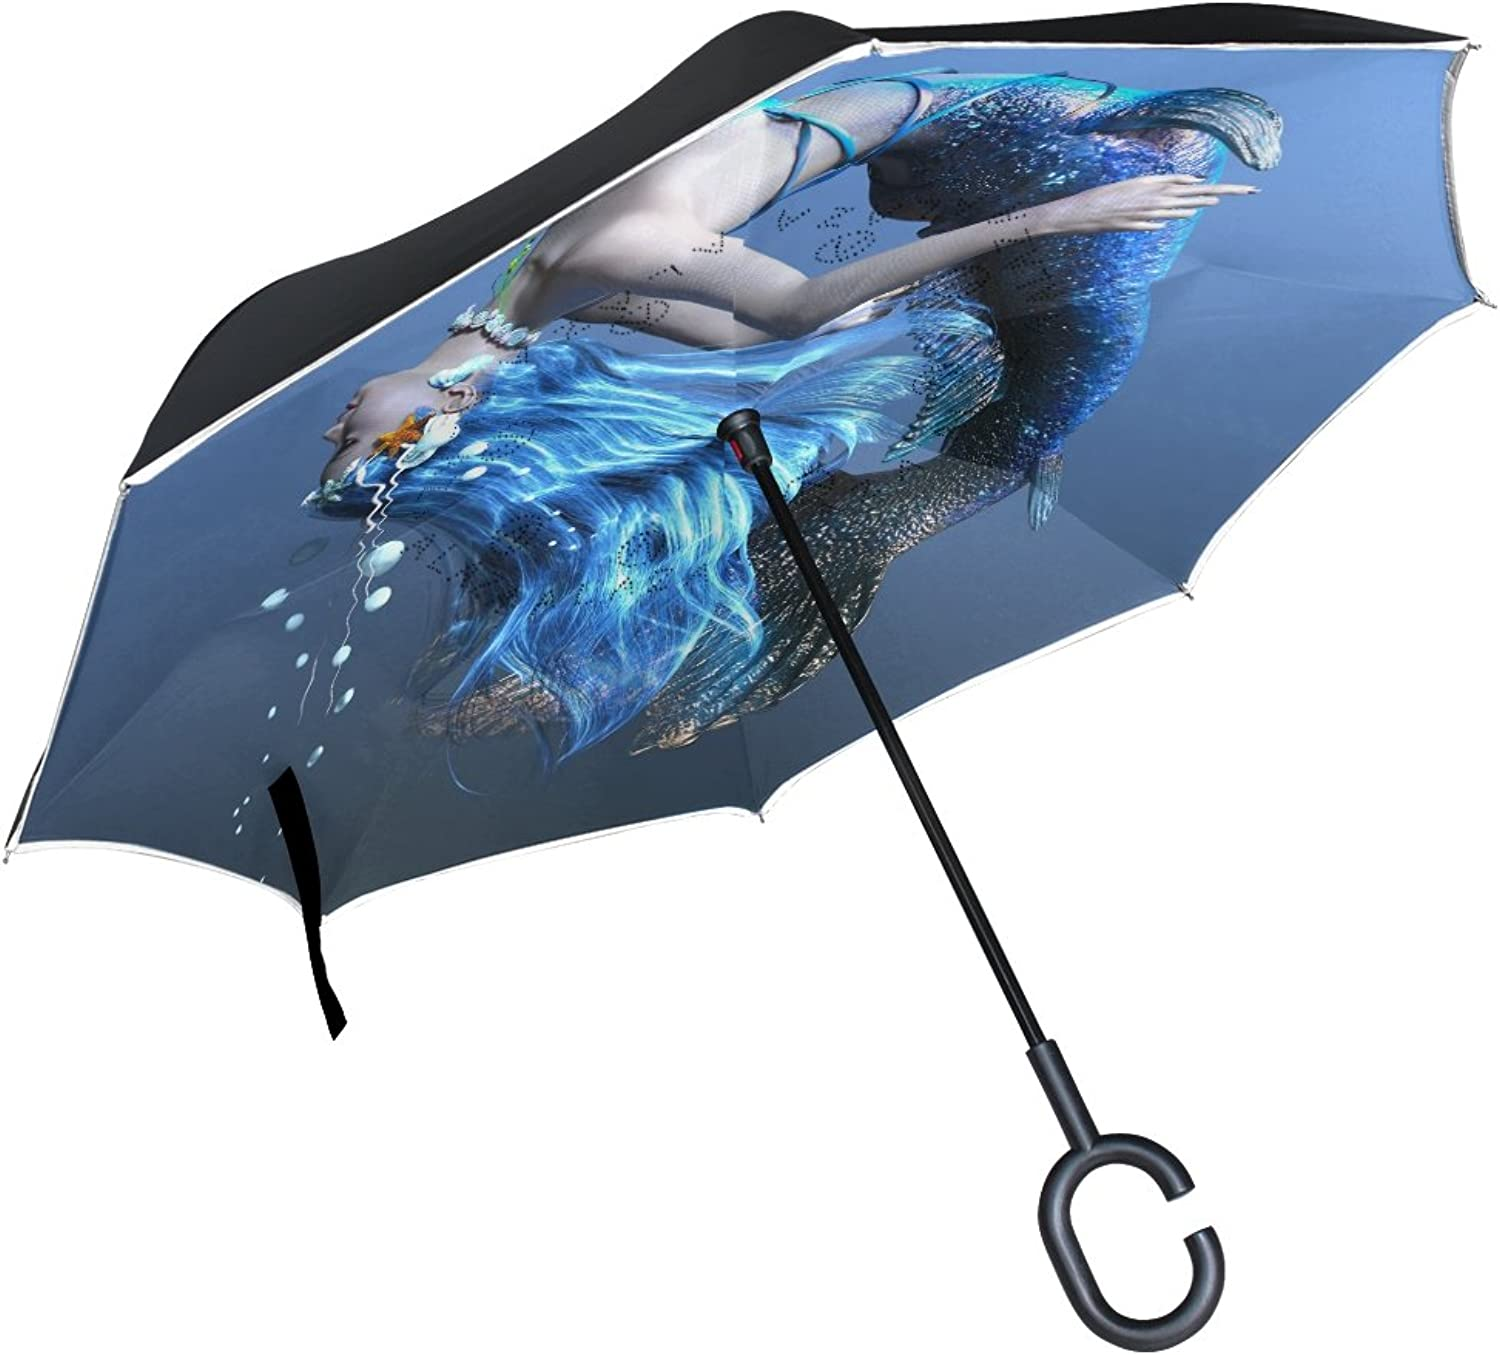 MASSIKOA 3D CG Rendering Of A Mermaid Ingreened Double Layer Straight Umbrellas Inside-Out Reversible Umbrella with C-Shaped Handle for Rain Sun Car Use